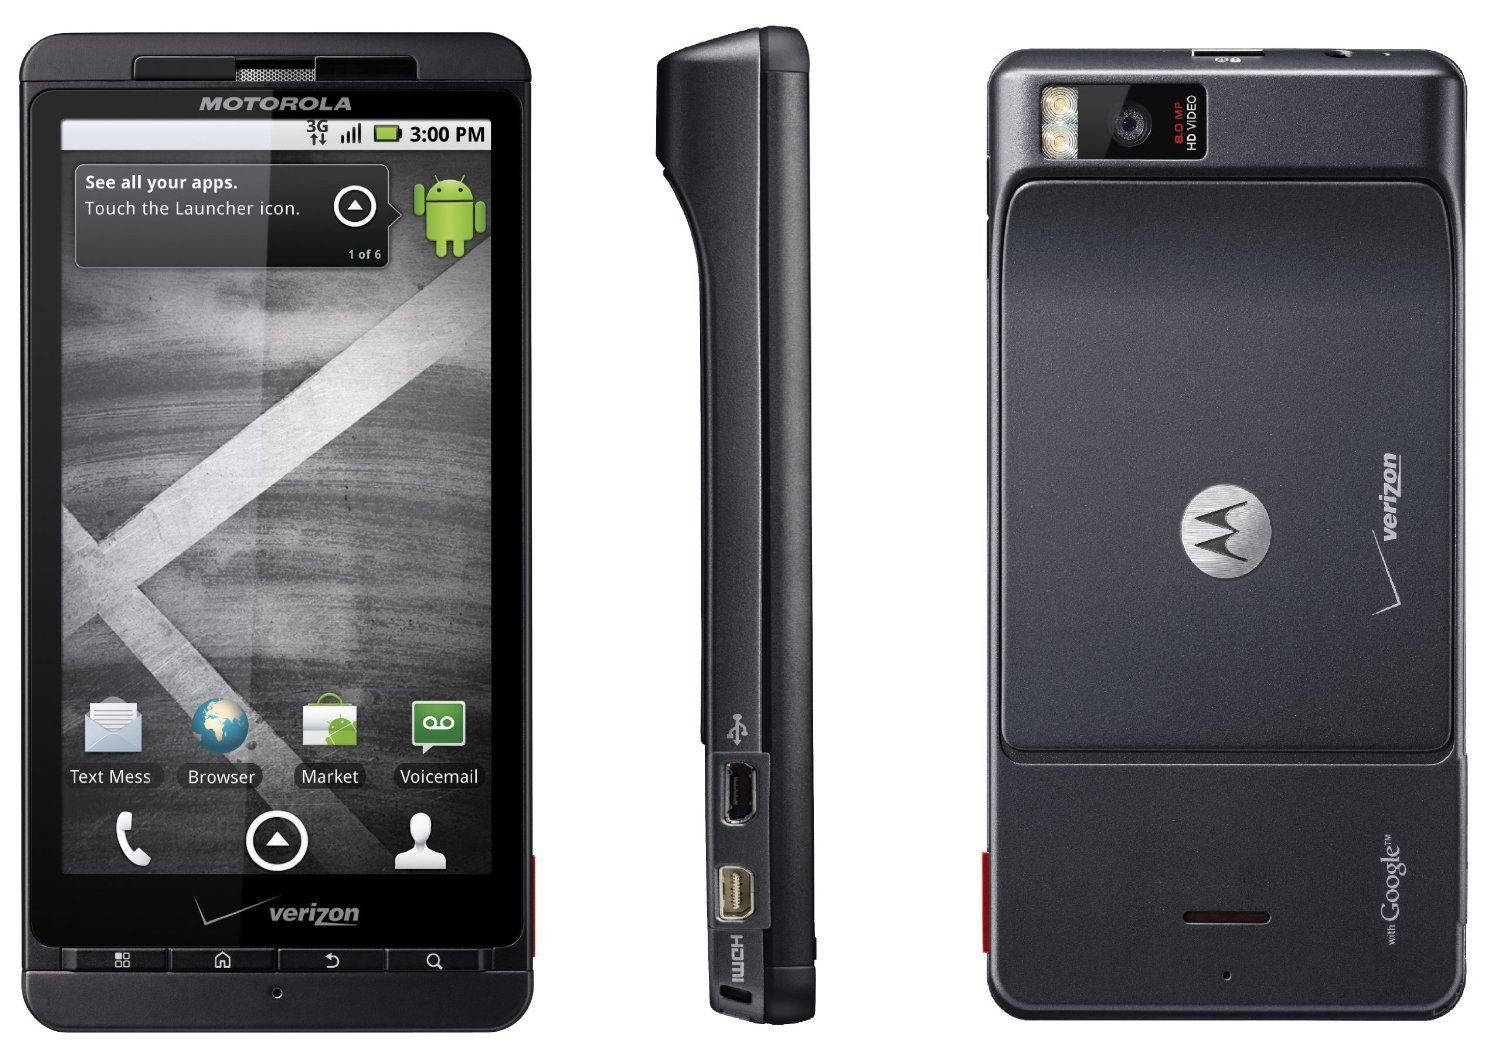 Verizon Motorola Droid X WiFi 3G Camera Android Smartphone Cell Phone